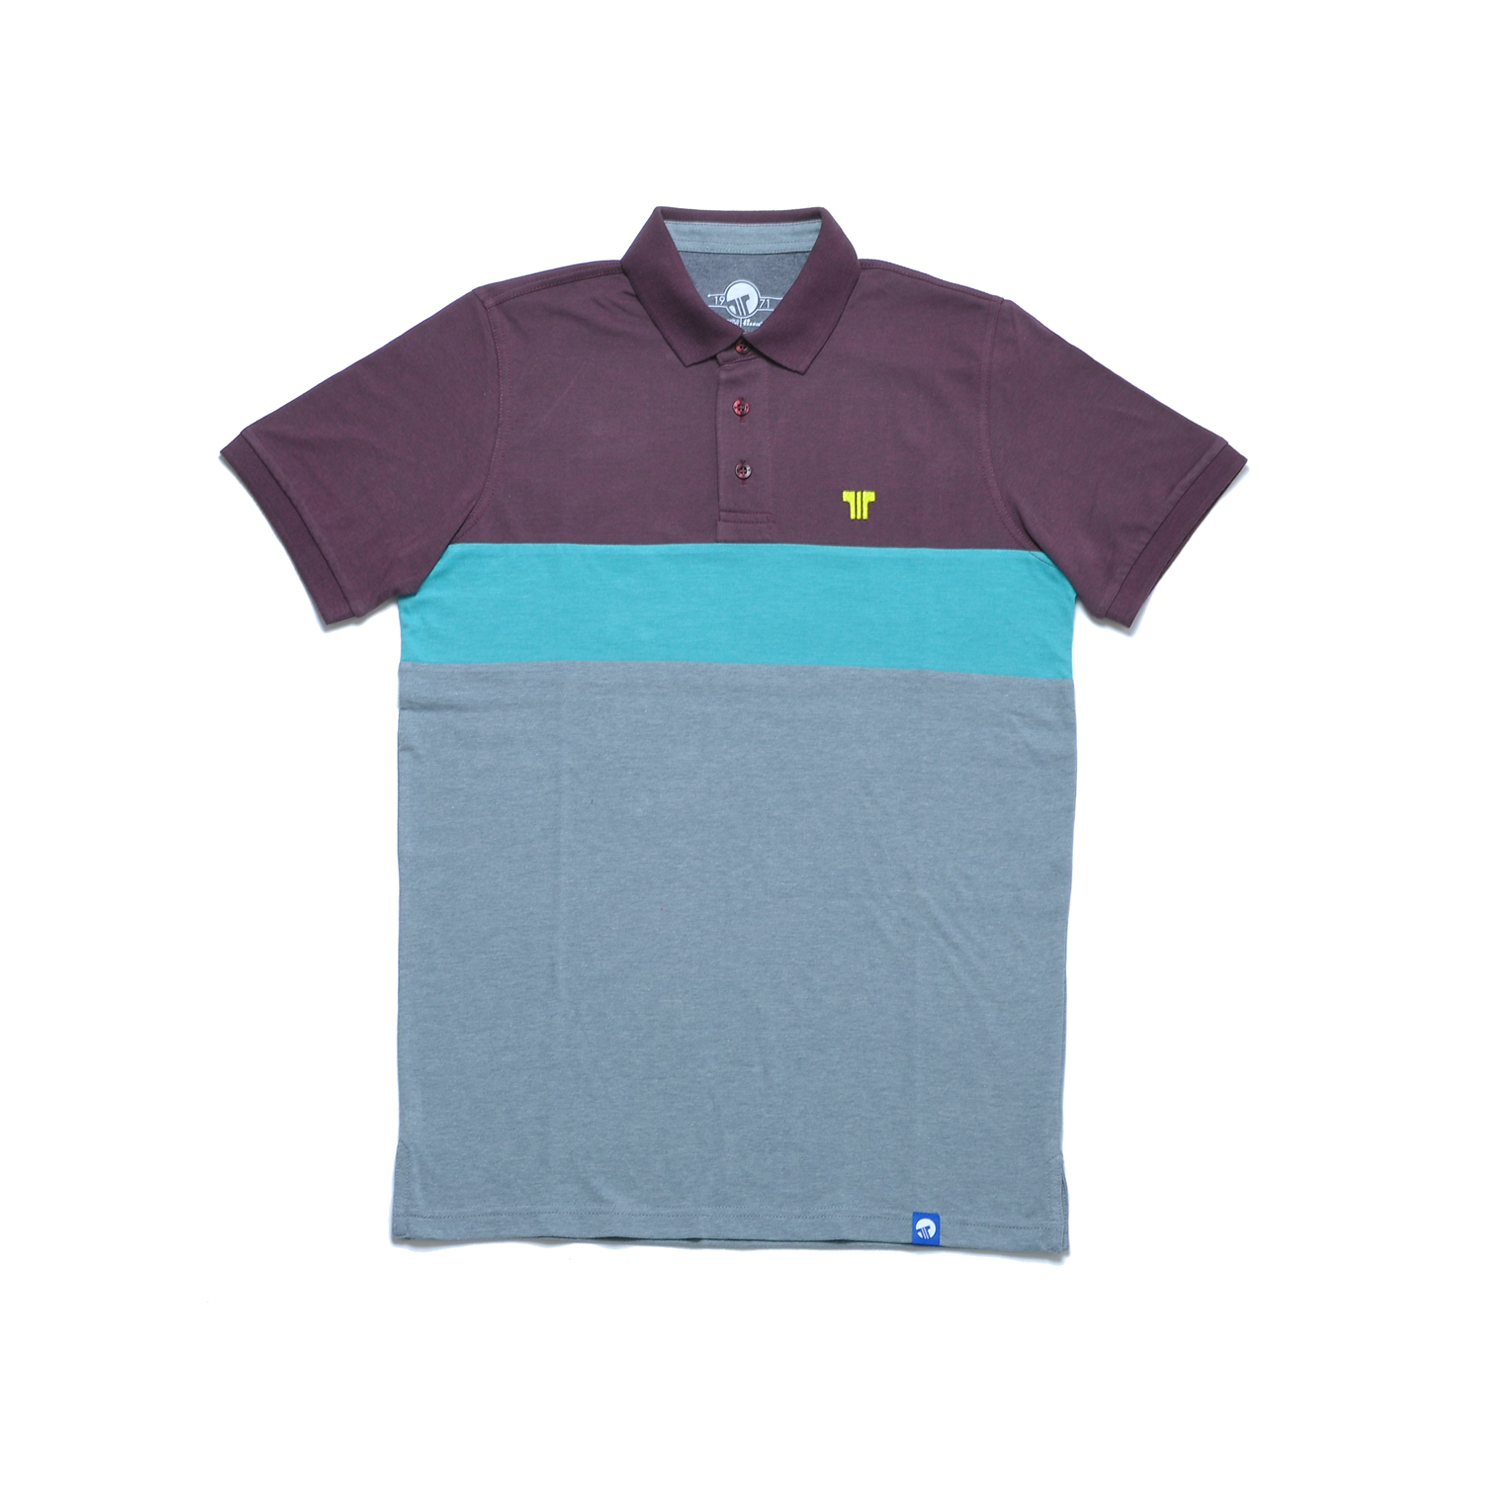 Tisza shoes - Tennis shirt - Claret-aqua-grey